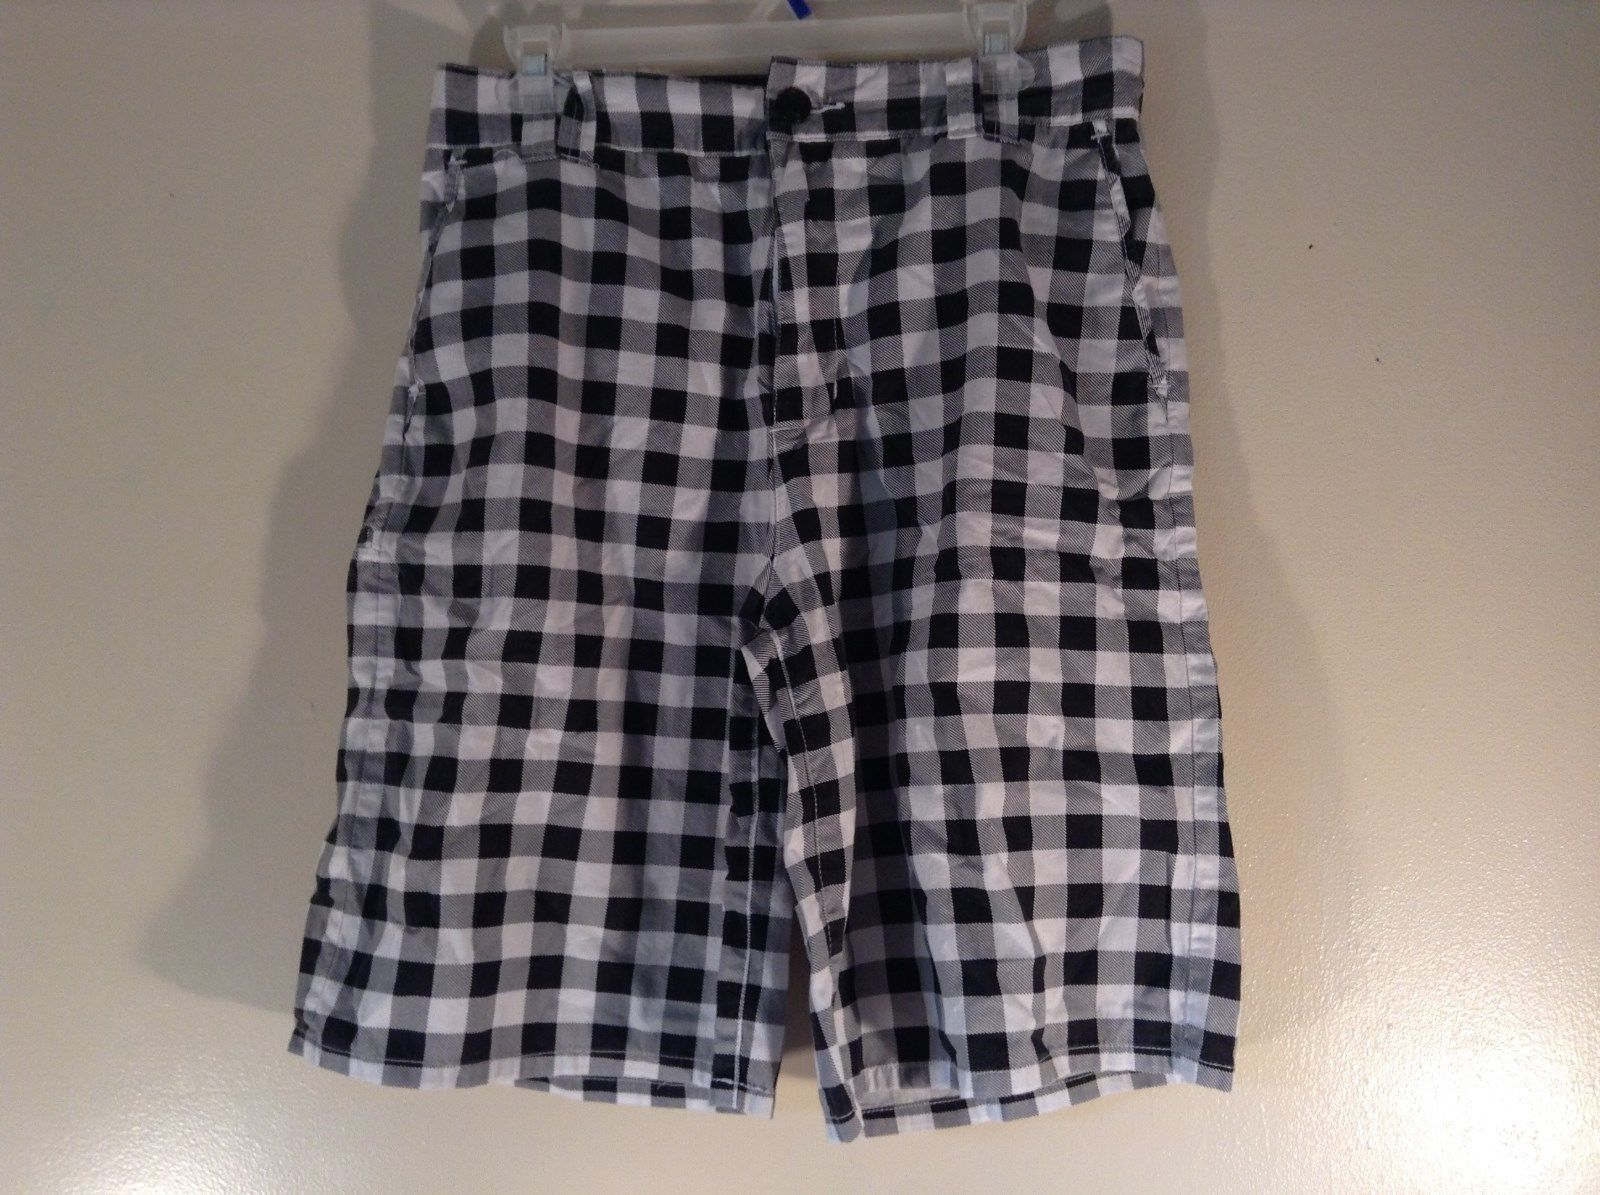 Chor 100 Percent Cotton Size 30 Black and White Checkered Casual Shorts